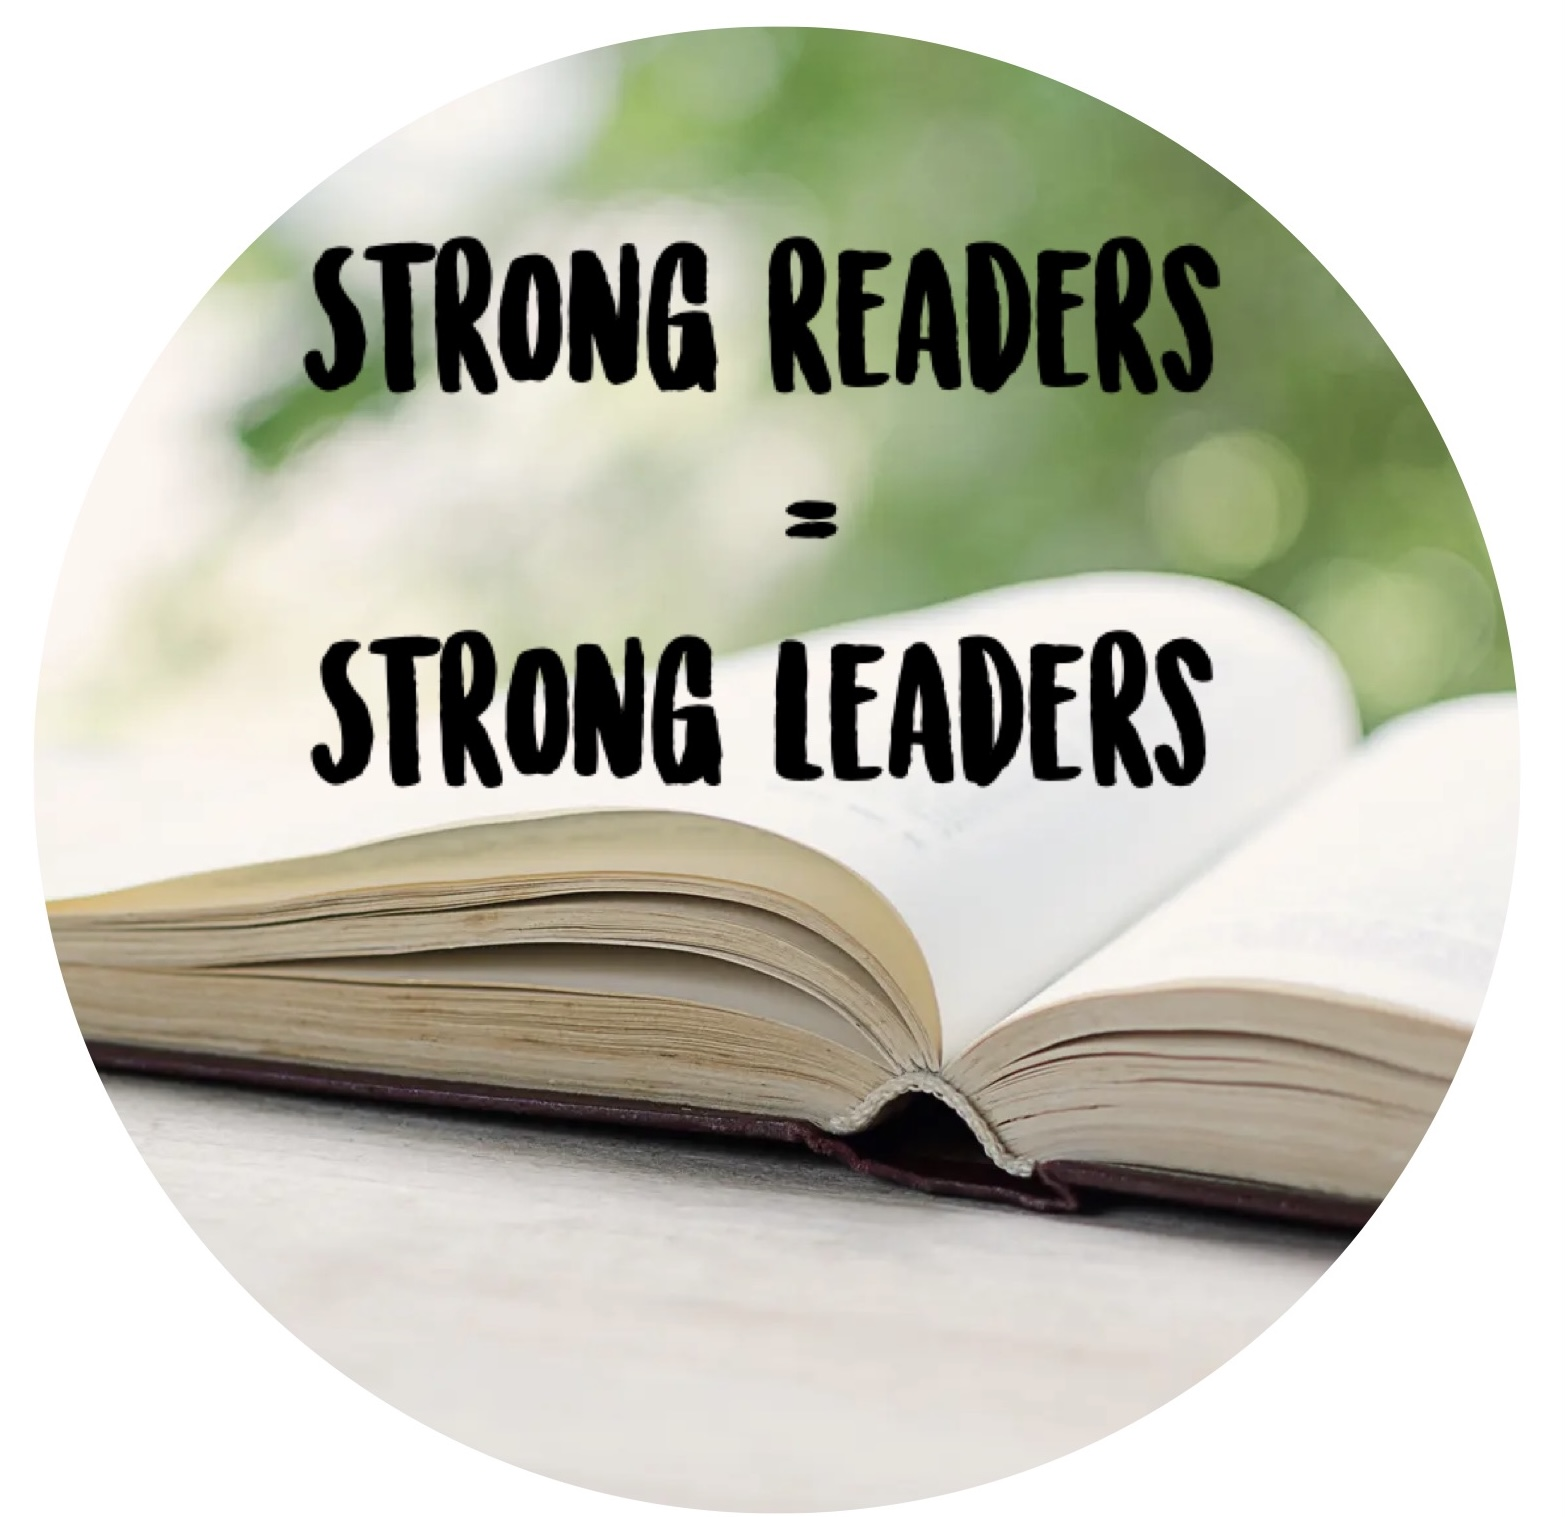 strong readers + strong leaders